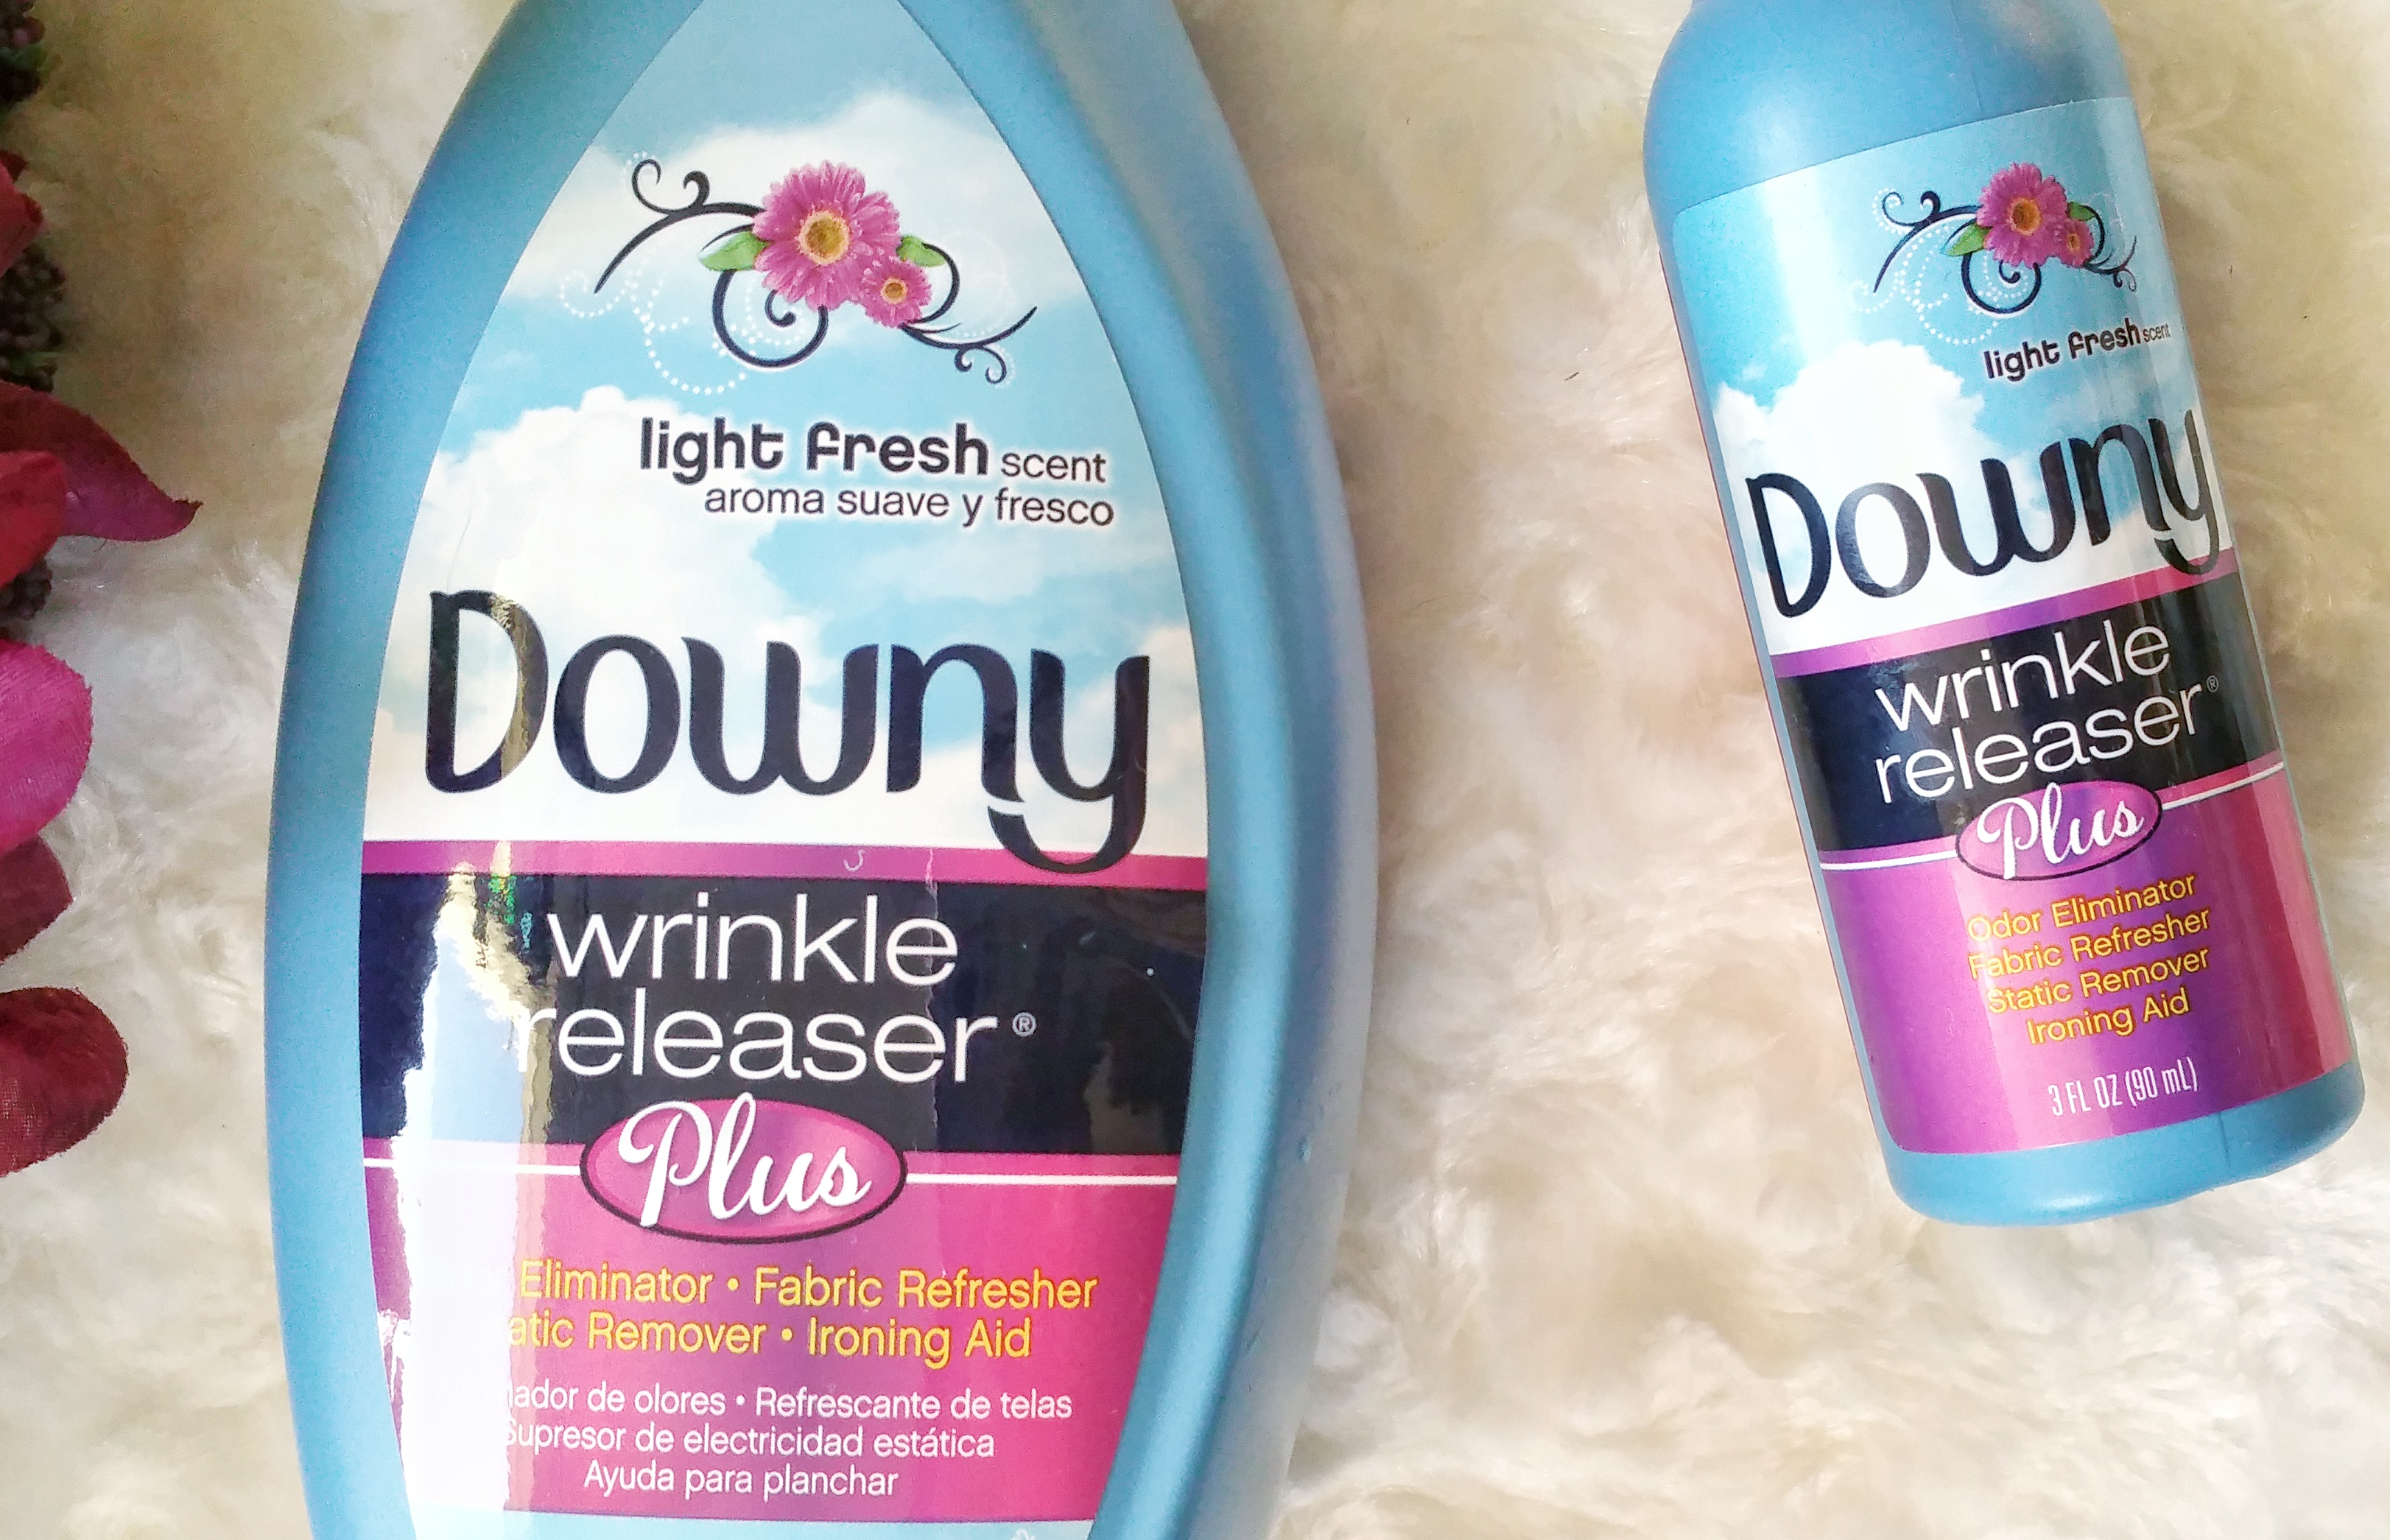 Downy Wrinkle Releaser Plus, downy, wrinkle free, wrinkles, clothes, mommy, helper, working mom, busy mom, house chores, household, review, wrinkle releaser, odor eliminator, fabric refresher, static remover, ironing aid, fresh scent, product review, home management,